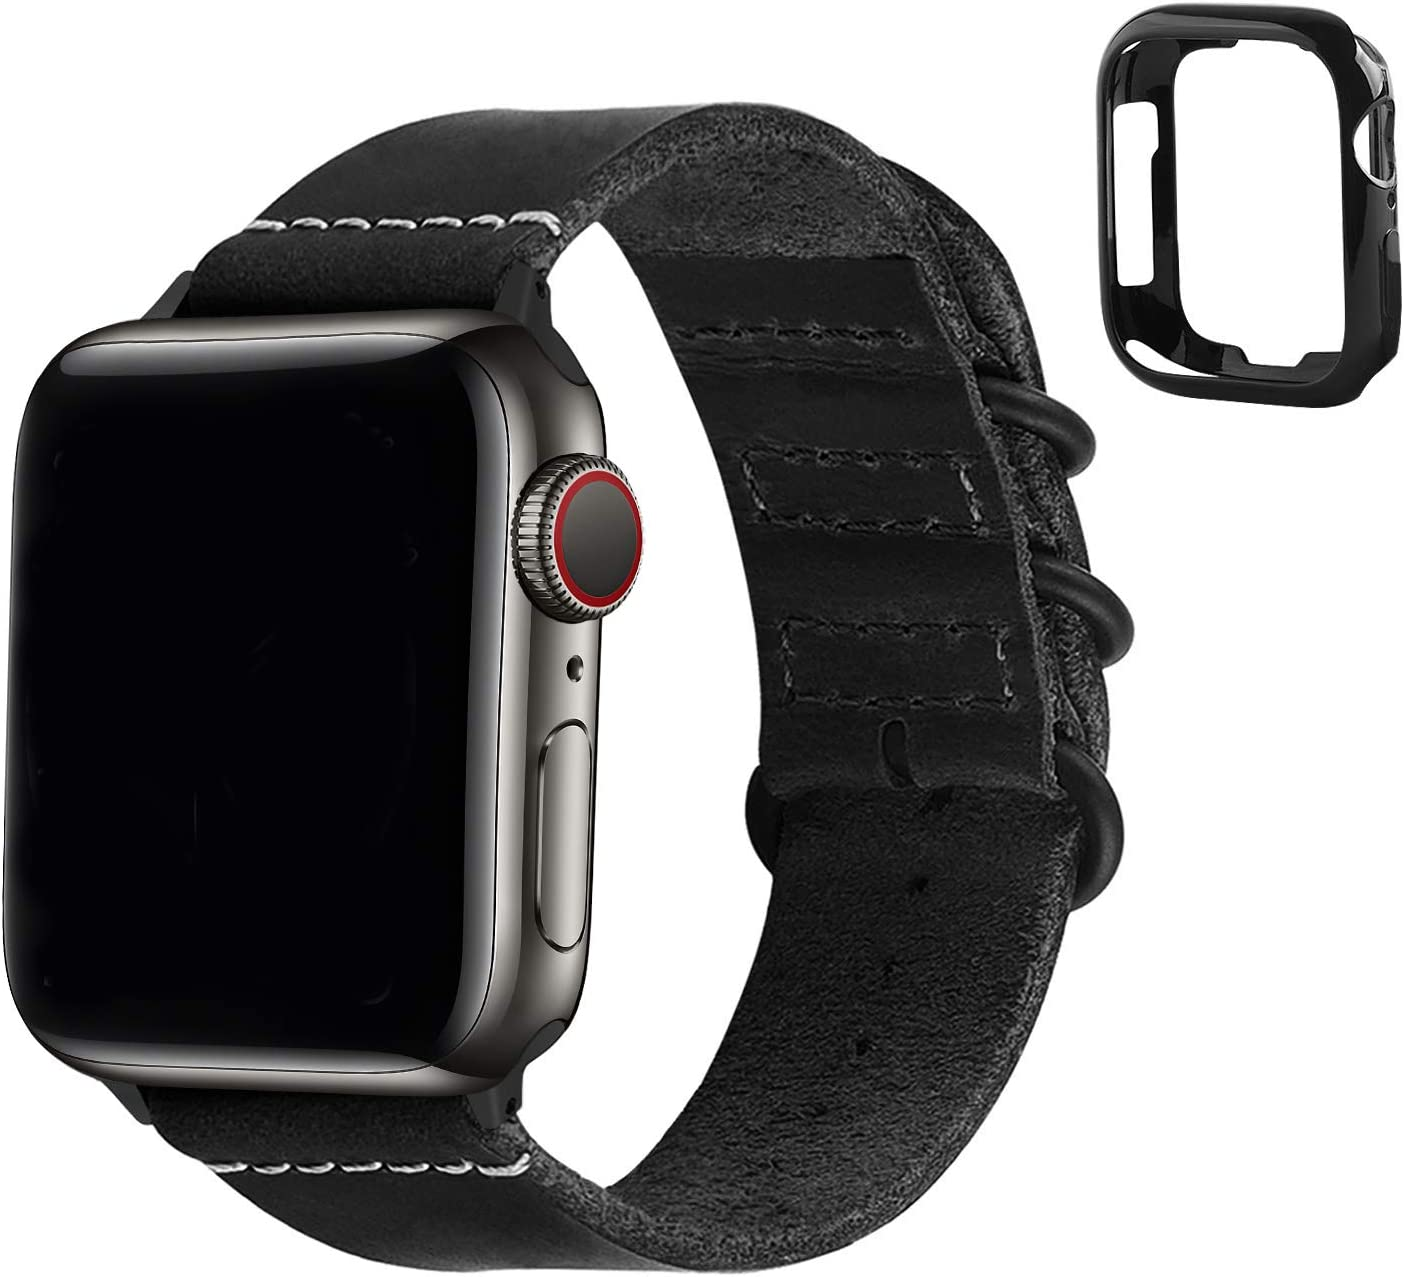 Fullmosa Compatible Apple Watch Band 44mm 42mm 38mm 40mm,Leather NATO Strap for iWatch SE & Series 6/5/4/3/2/1,Black,44mm 42mm